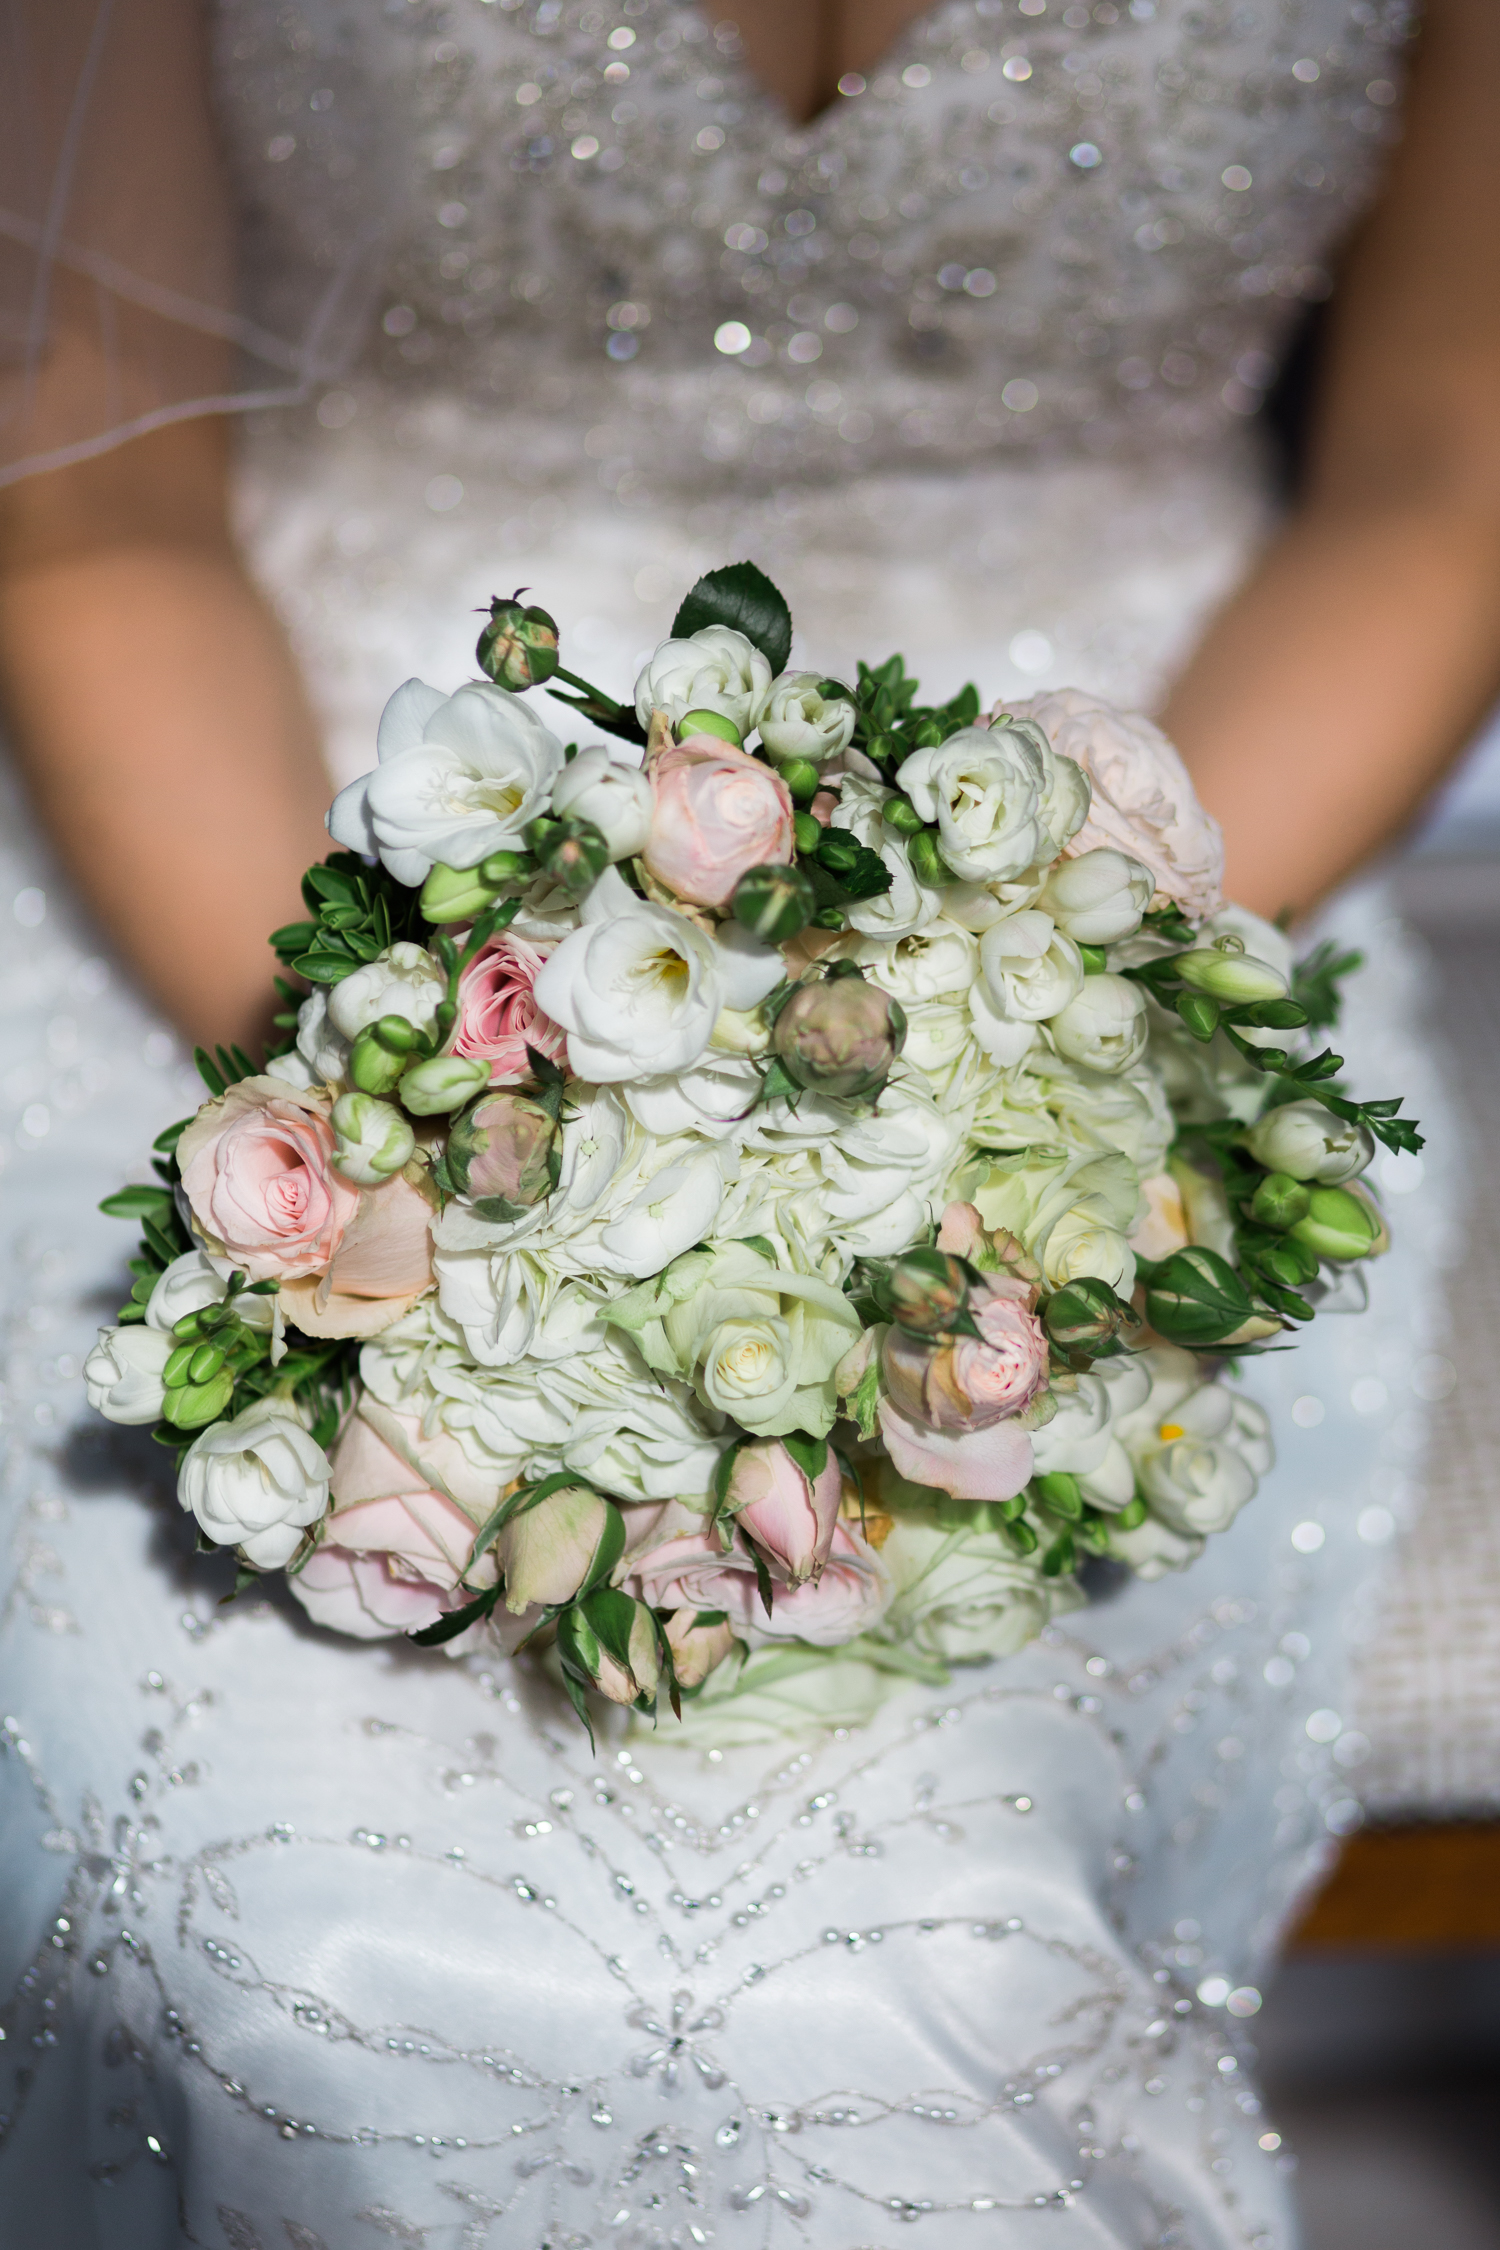 Wedding bouquet by Selina Godsal at Iscoyd Park Wedding photo